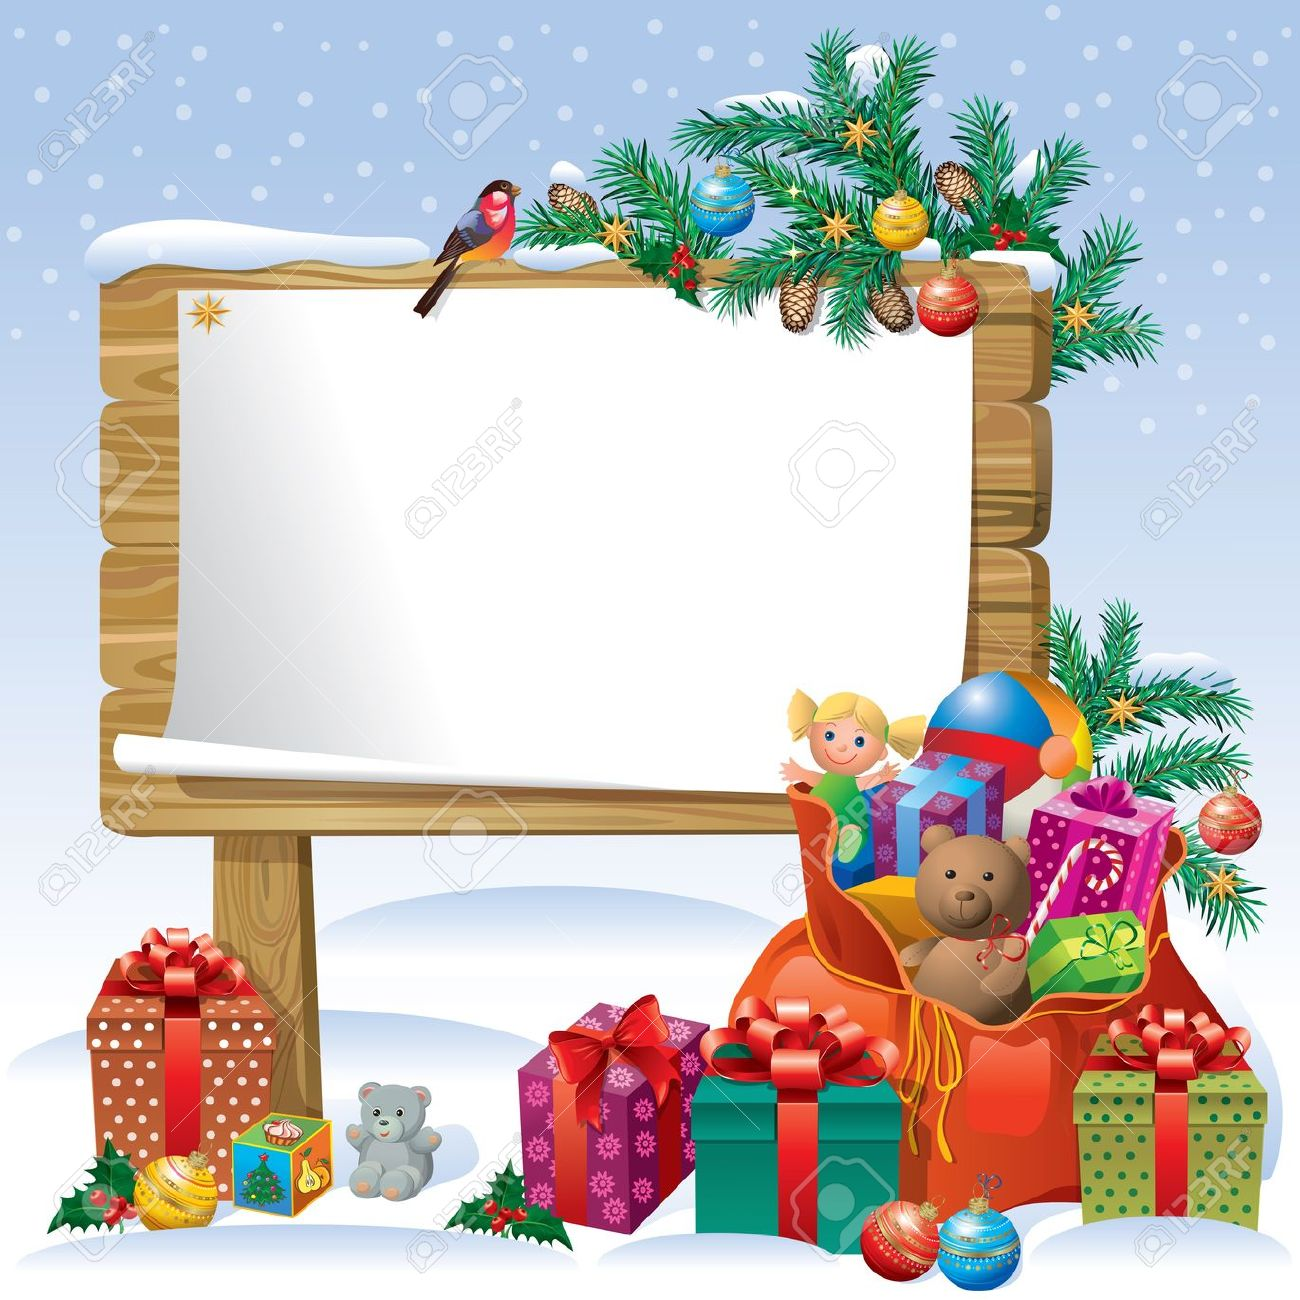 Christmas Gifts Pictures: Christmas Presents Clipart Bord 20 Free Cliparts